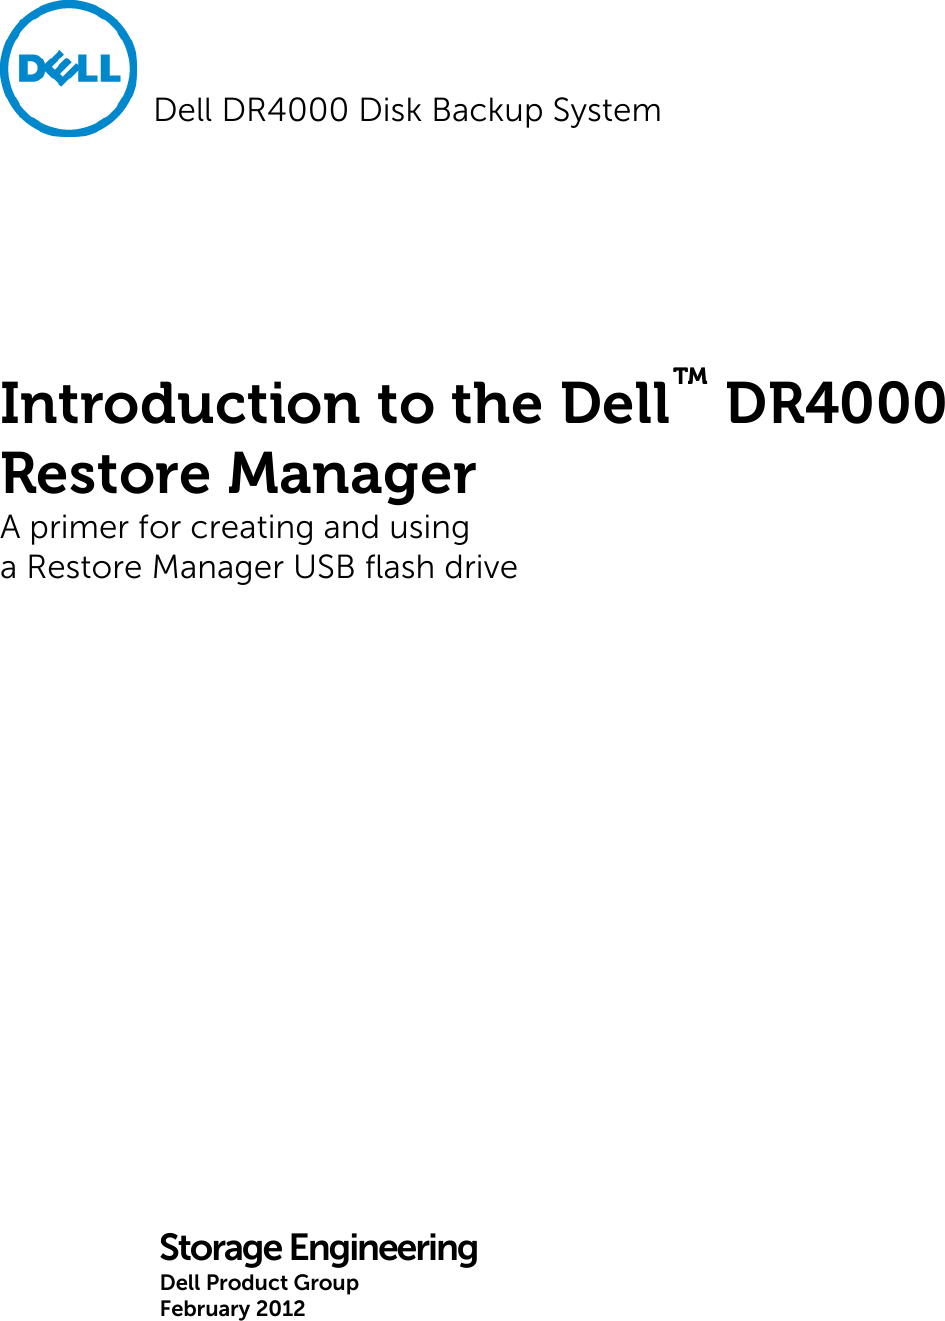 dell introduction to the dr4000 restore manager 1508079063dell rh usermanual wiki Clip Art User Guide User Guide Template